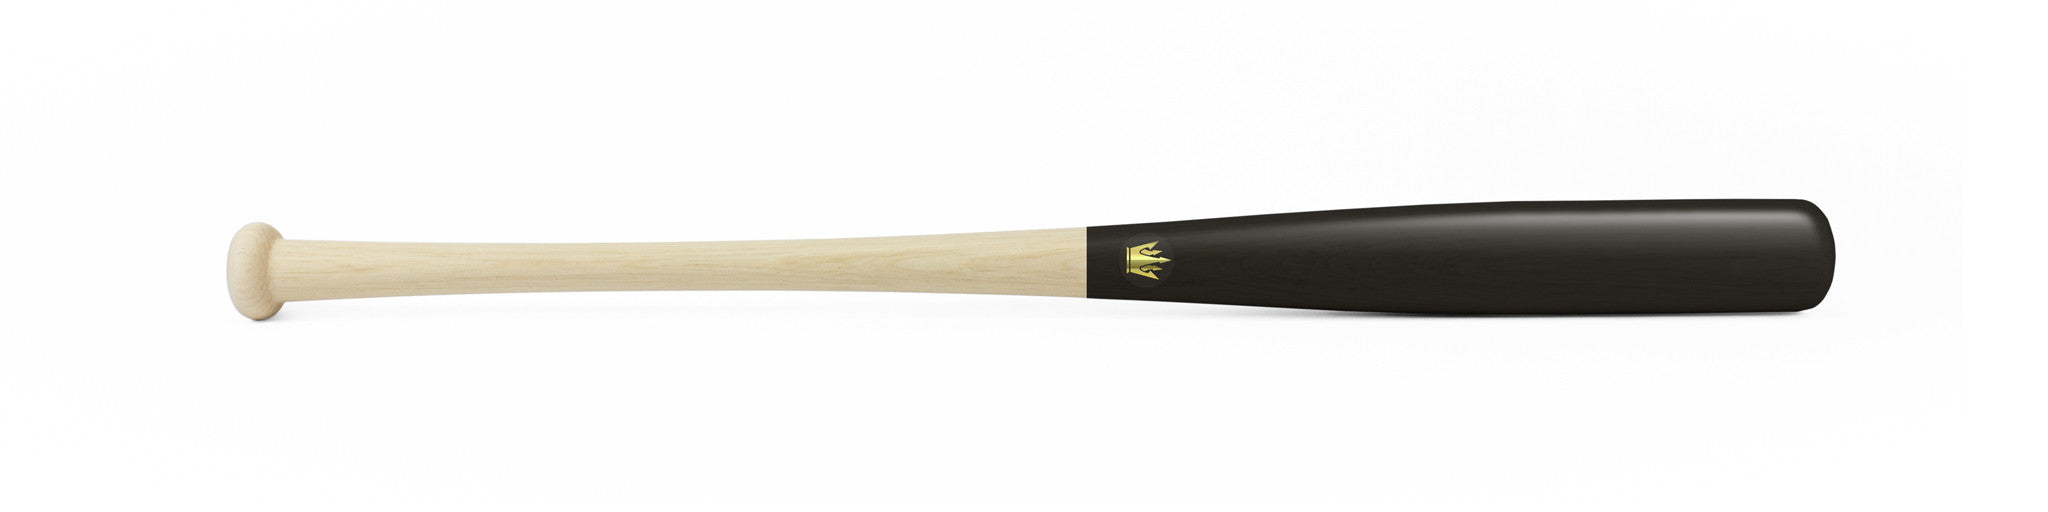 Wood bat - Maple model L10 Black Standard - 11